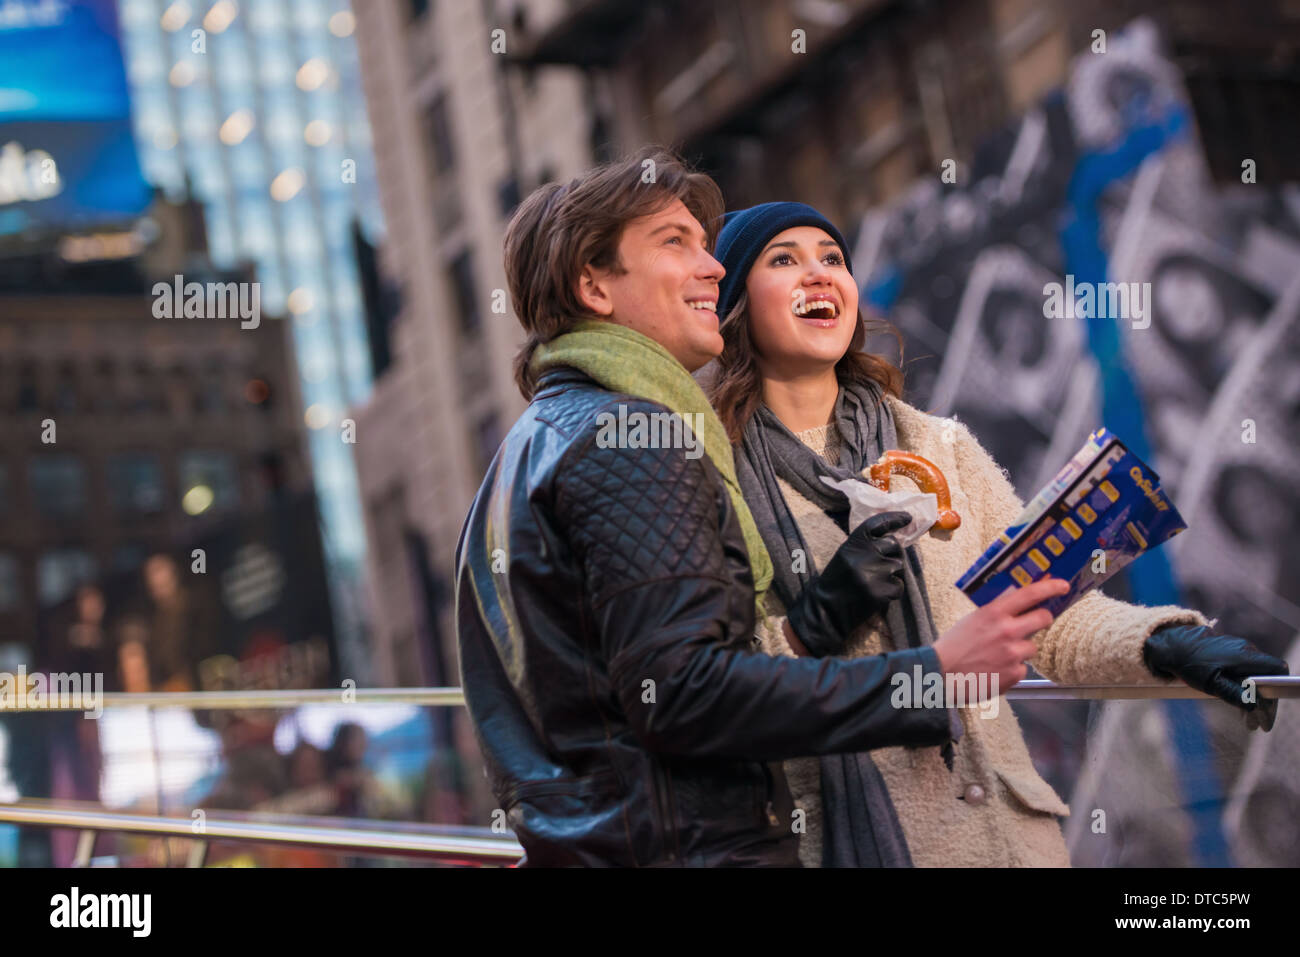 Young couple on vacation with map and bagel, New York City, USA - Stock Image